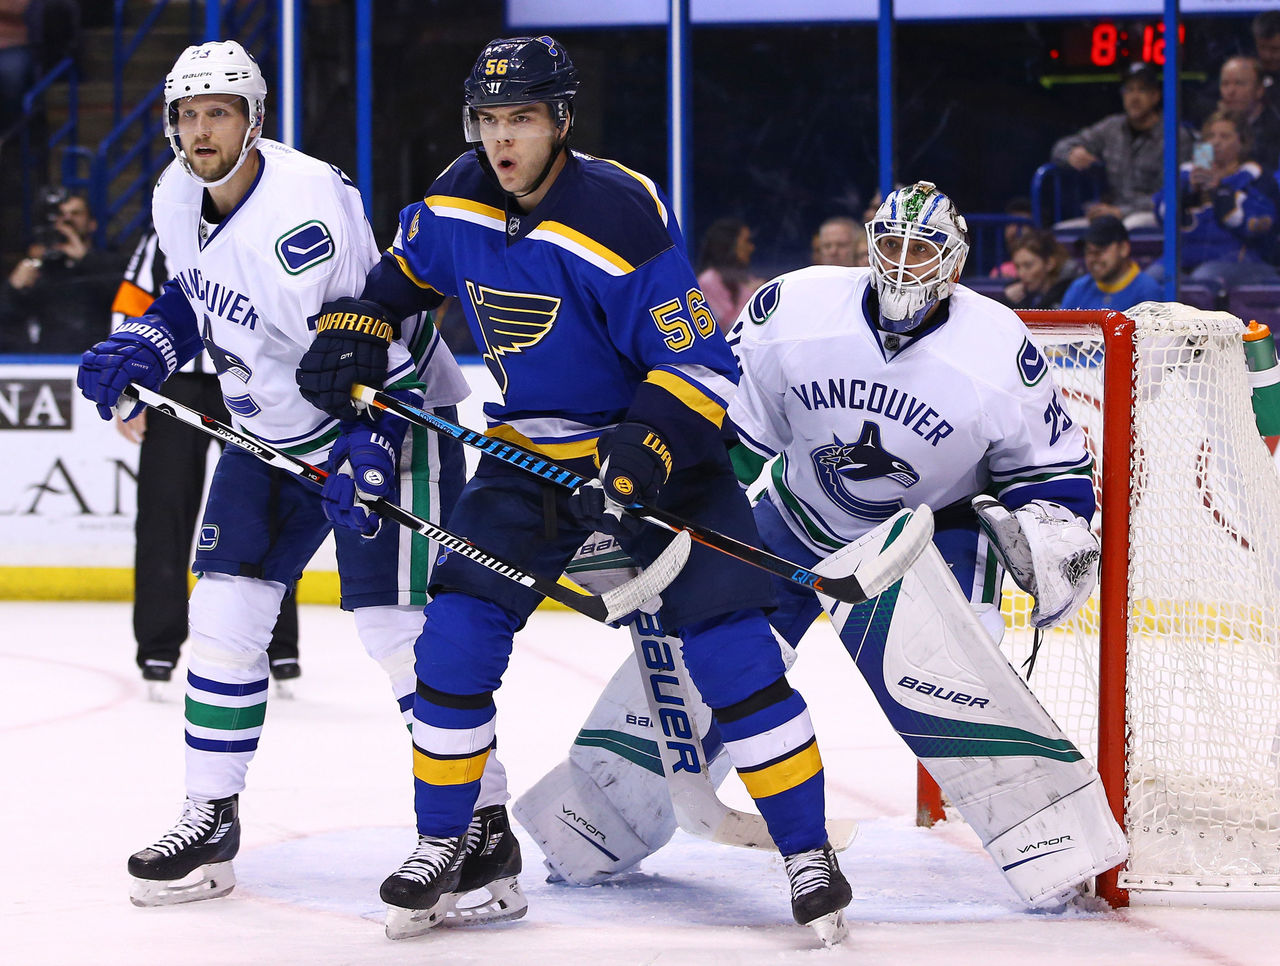 Cropped_2017-02-17t025334z_1466063657_nocid_rtrmadp_3_nhl-vancouver-canucks-at-st-louis-blues